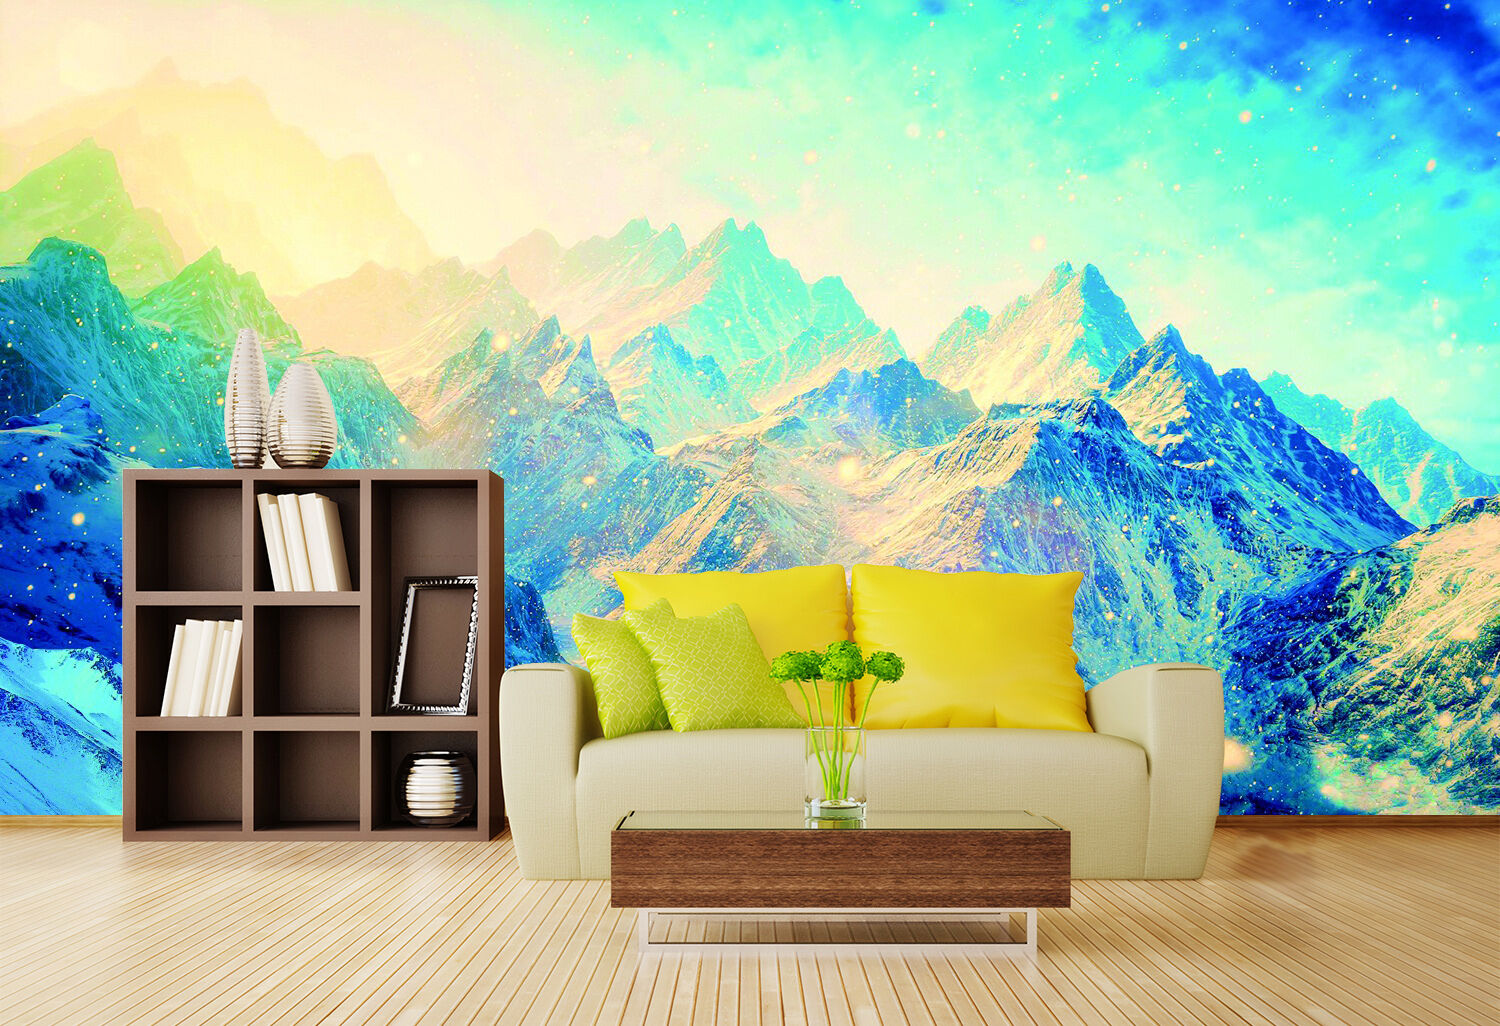 3D Snow Mountain sunlight Wall Paper Print Decal Wall Deco Indoor wall Mural